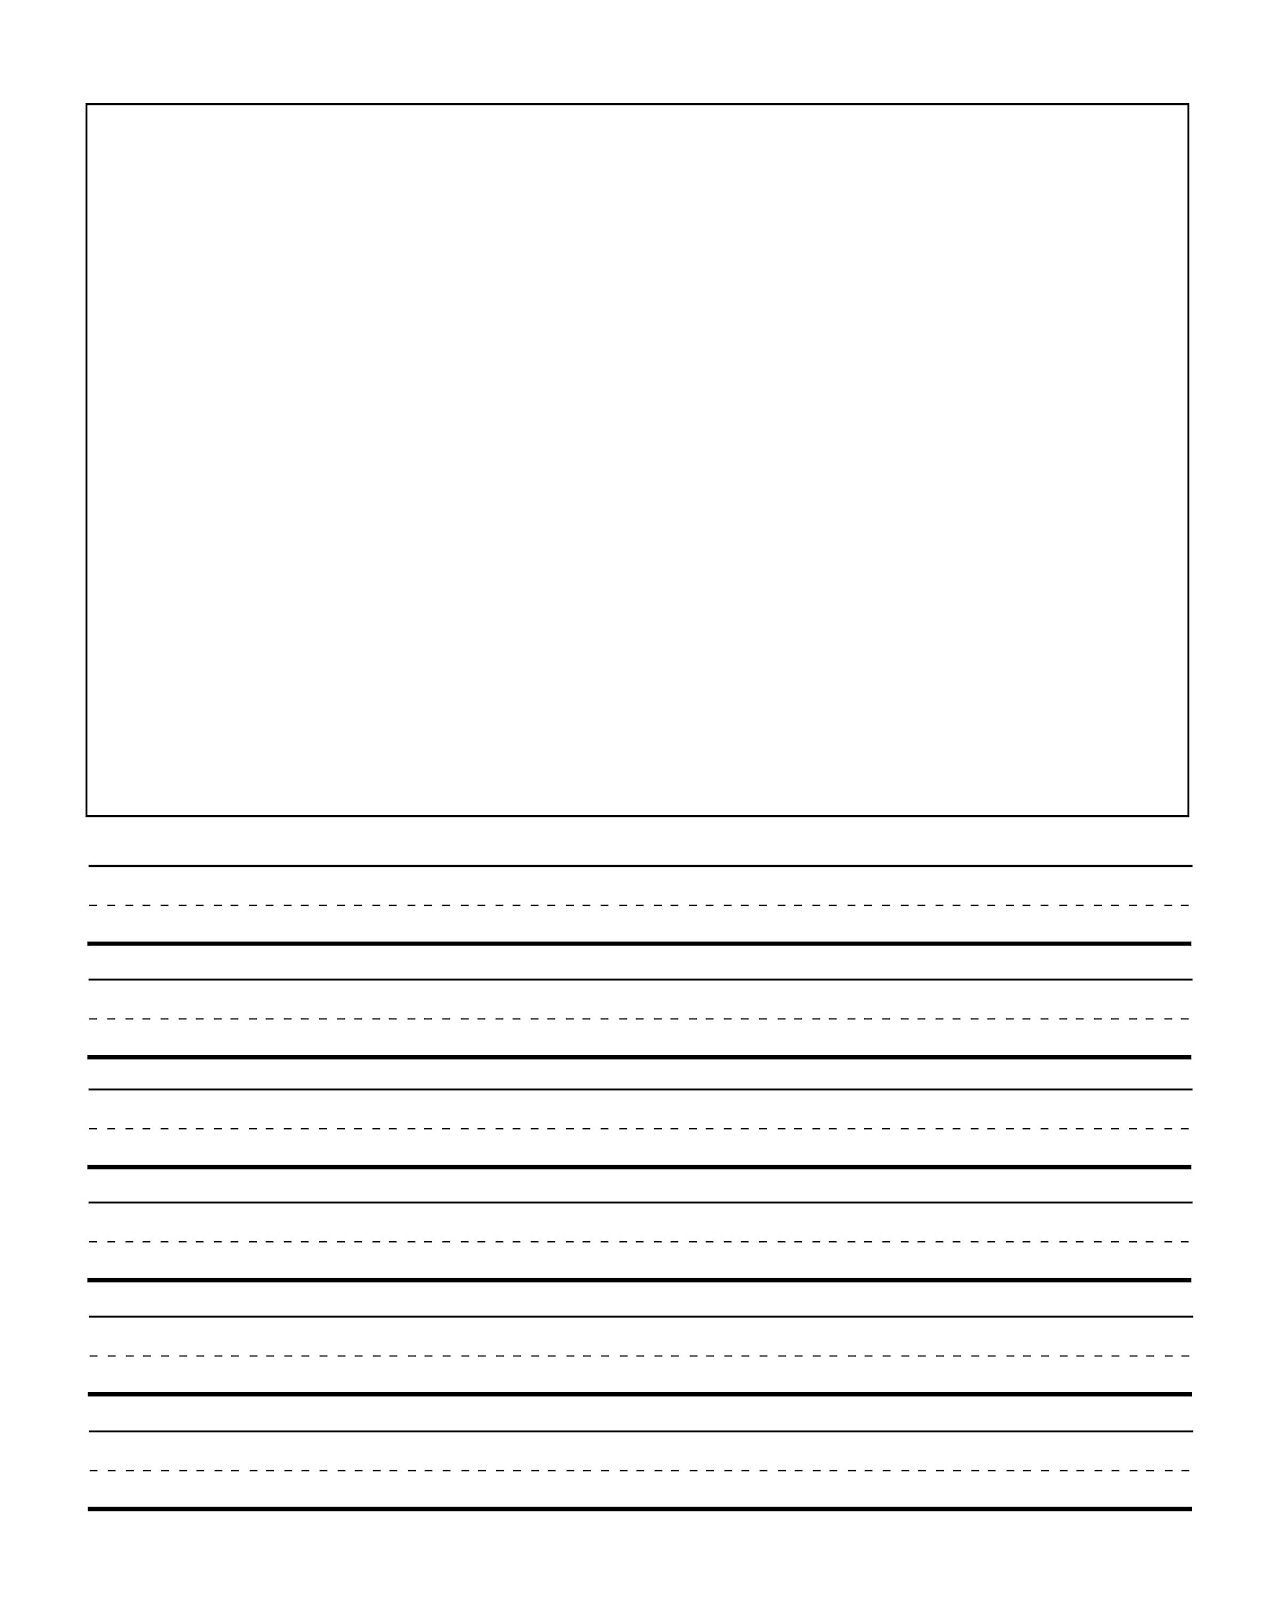 First Grade Writng Paper Template With Picture   Journal Writing - Elementary Lined Paper Printable Free